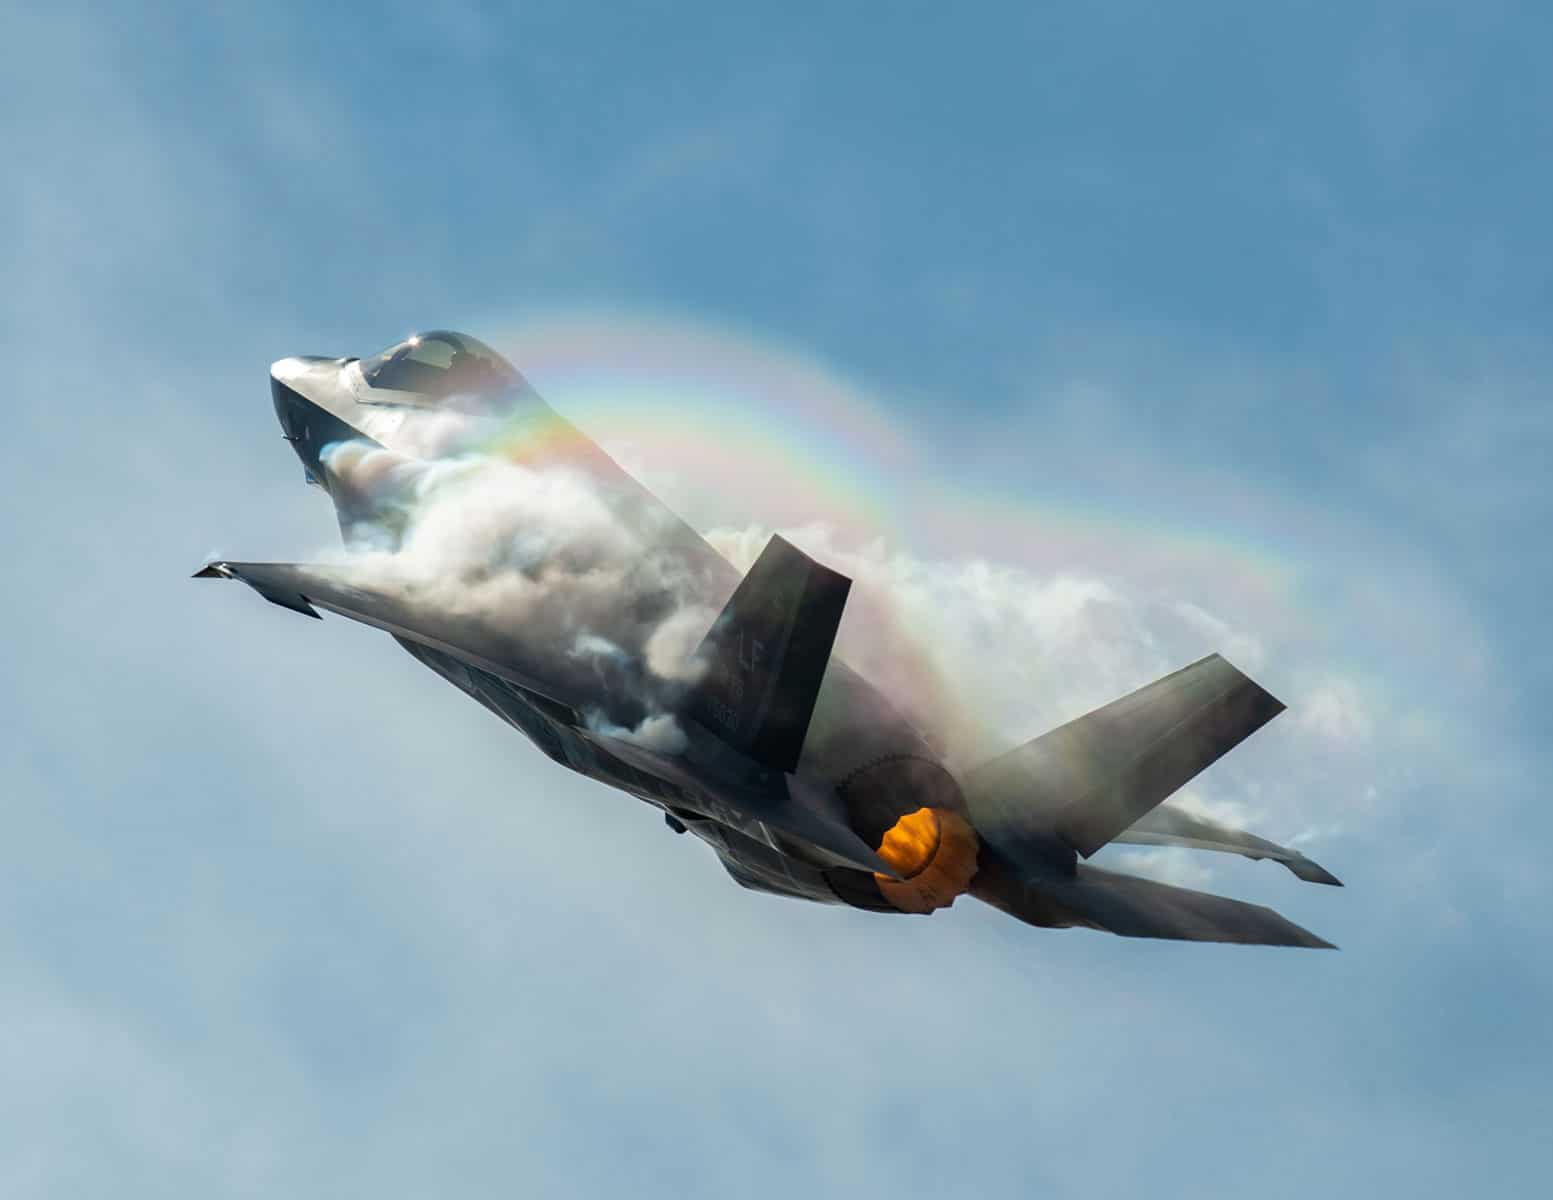 """Capt. Andrew """"Dojo"""" Olson, F-35 Heritage Flight Team pilot and commander performs a vertical climb in an F-35A Lightning II during the Bell Fort Worth Alliance Air Show in Fort Worth, Texas. The F-35A Lightning II's F-135 single-engine contains 43,000 pounds of thrust."""